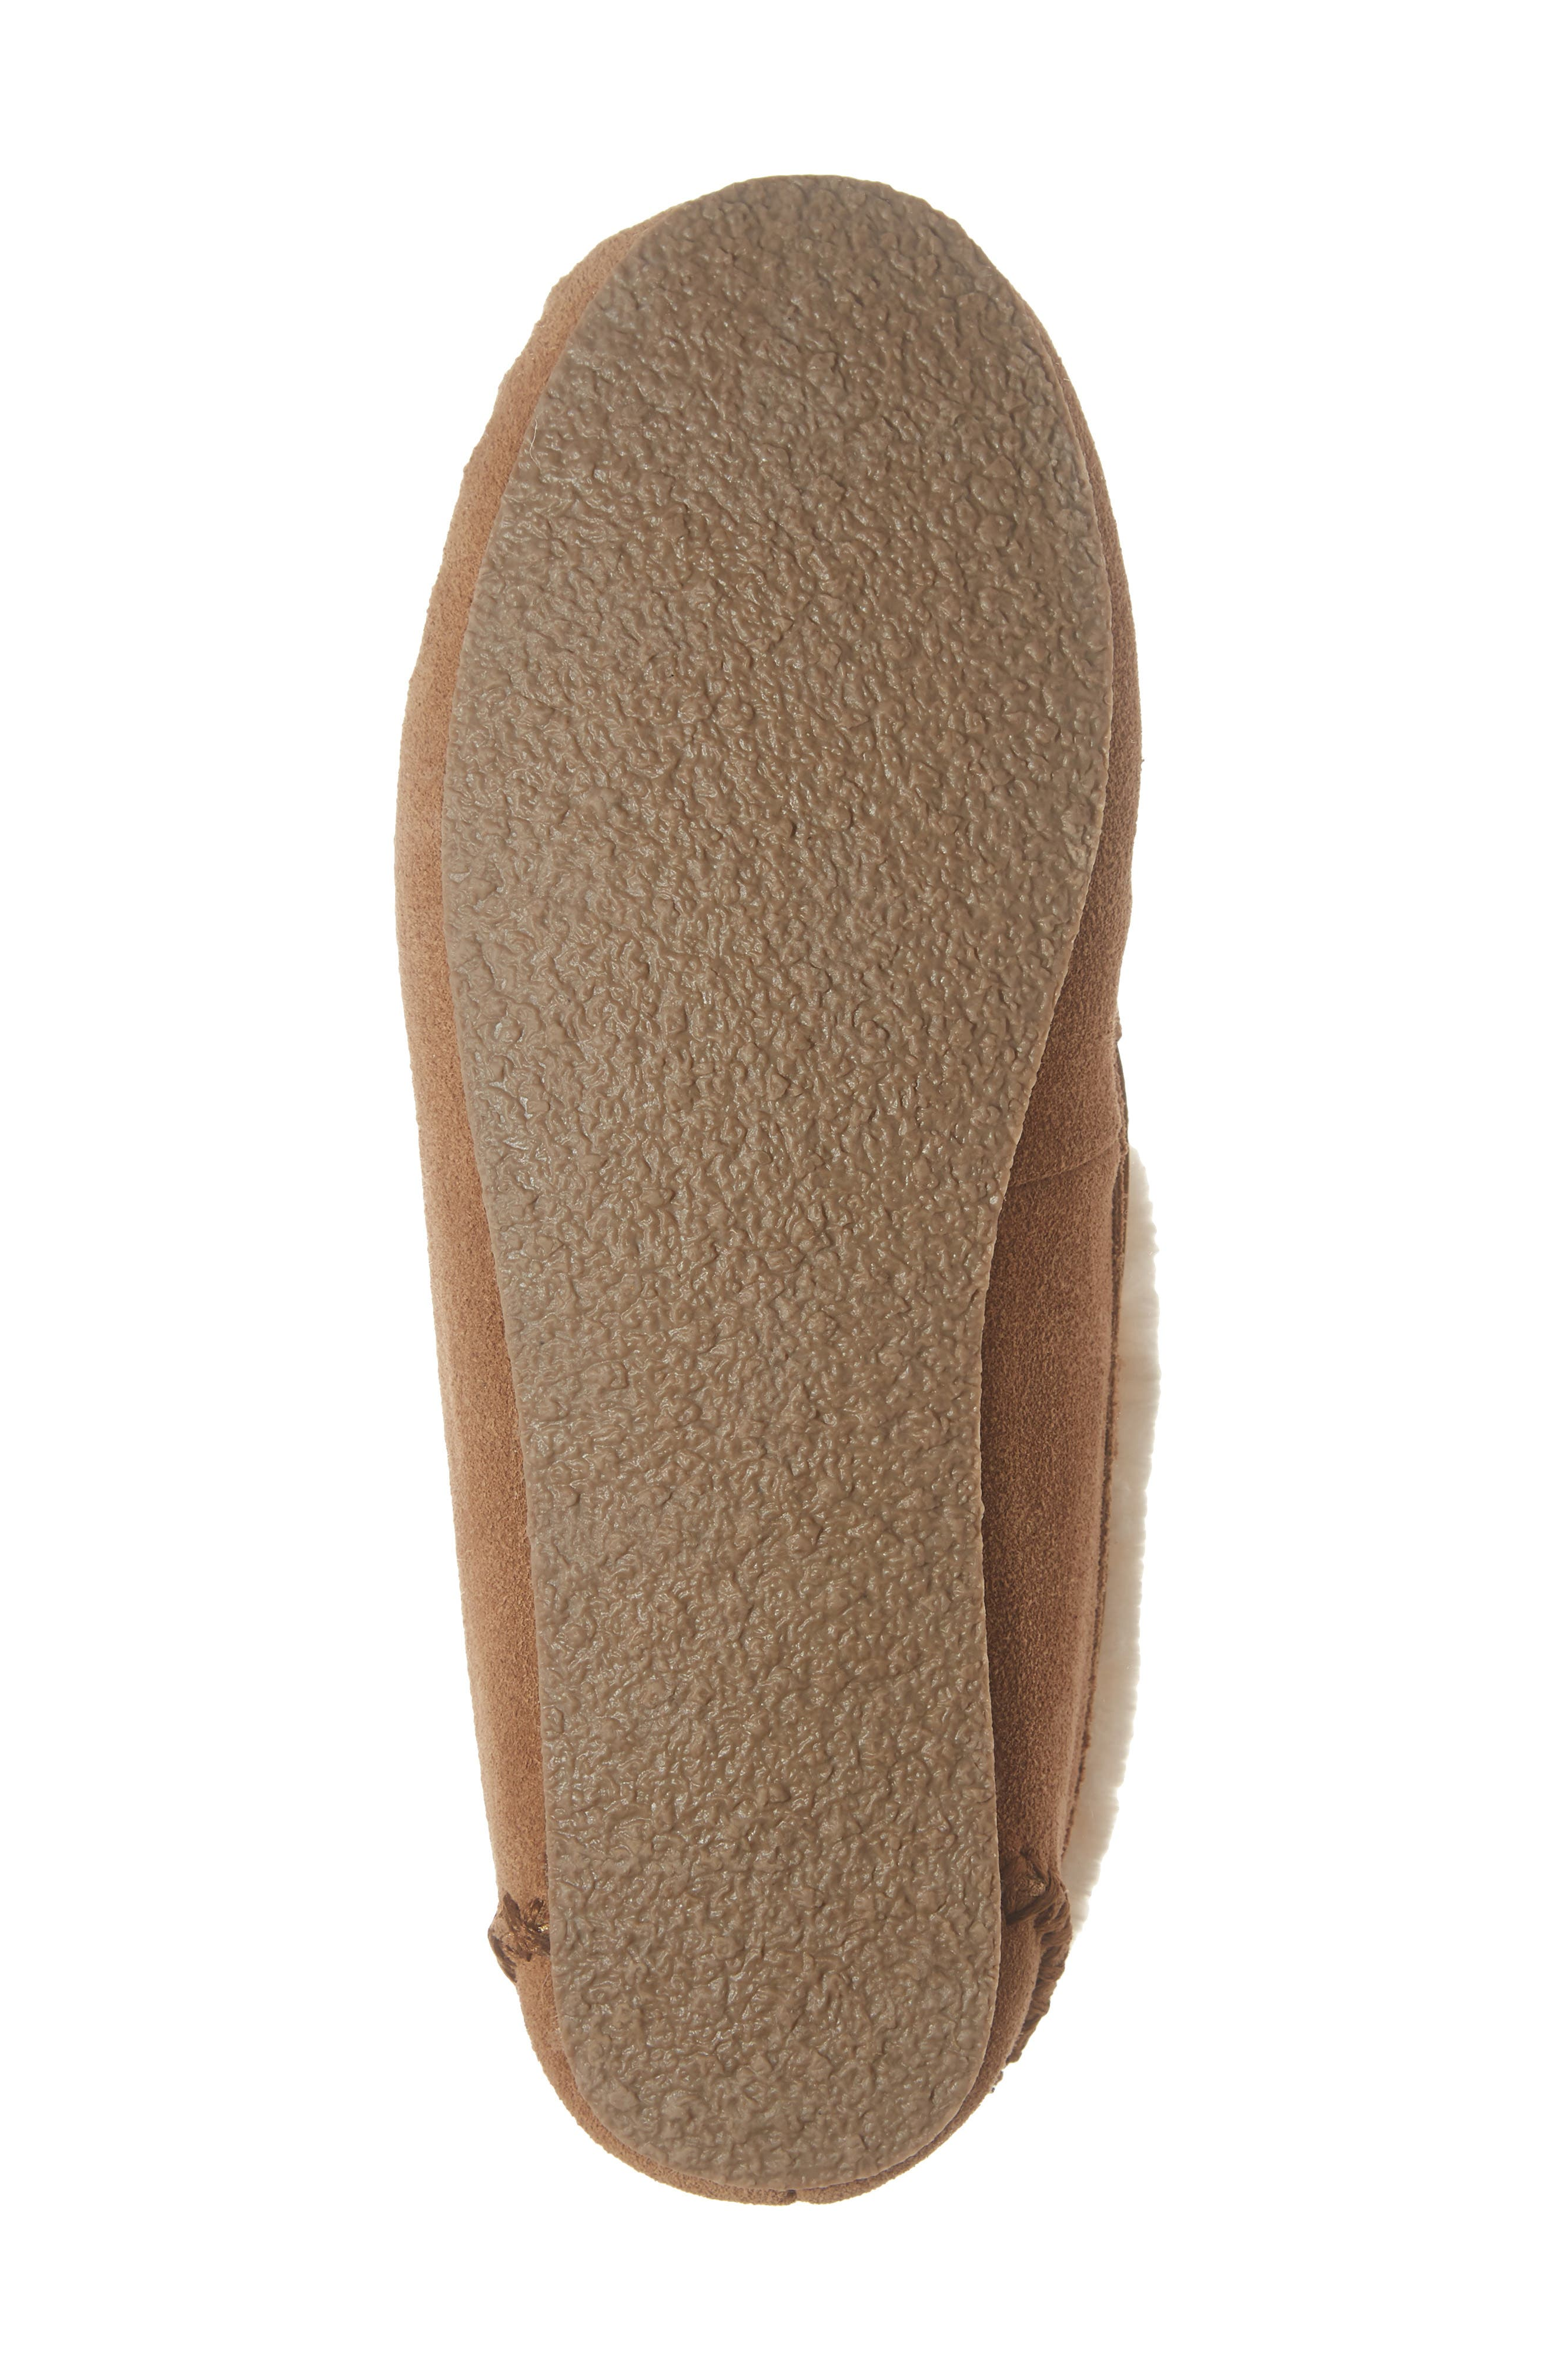 'Chrissy' Slipper Bootie,                             Alternate thumbnail 7, color,                             CINNAMON SUEDE